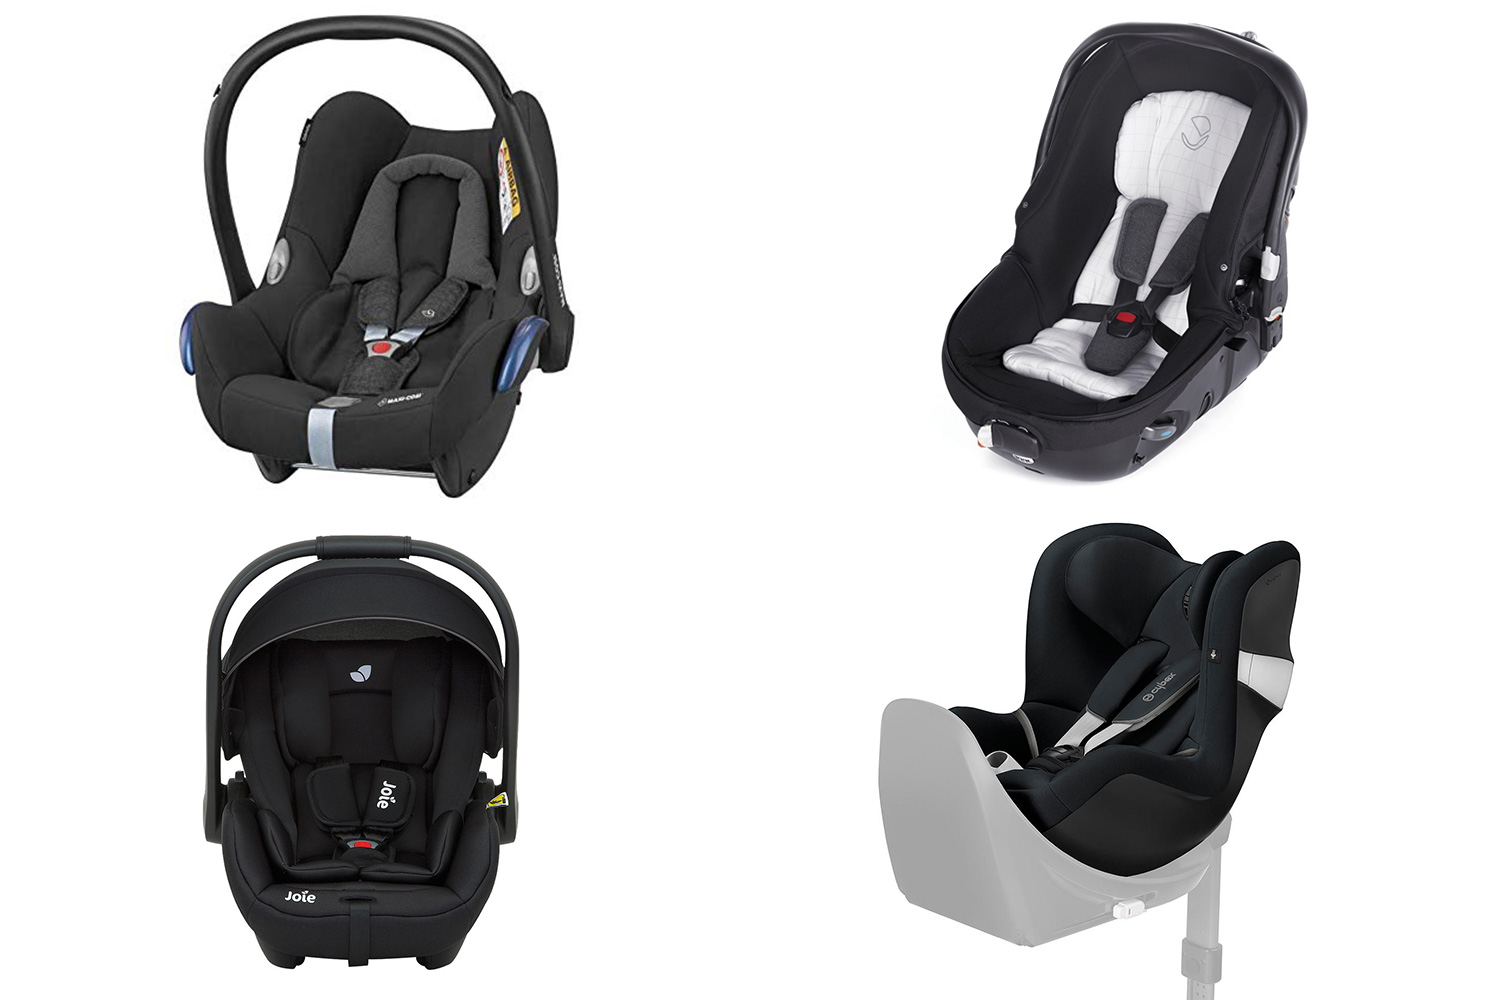 Infant Seat Vs Safety Seat Best Newborn Car Seat 2019 The Sun Uk